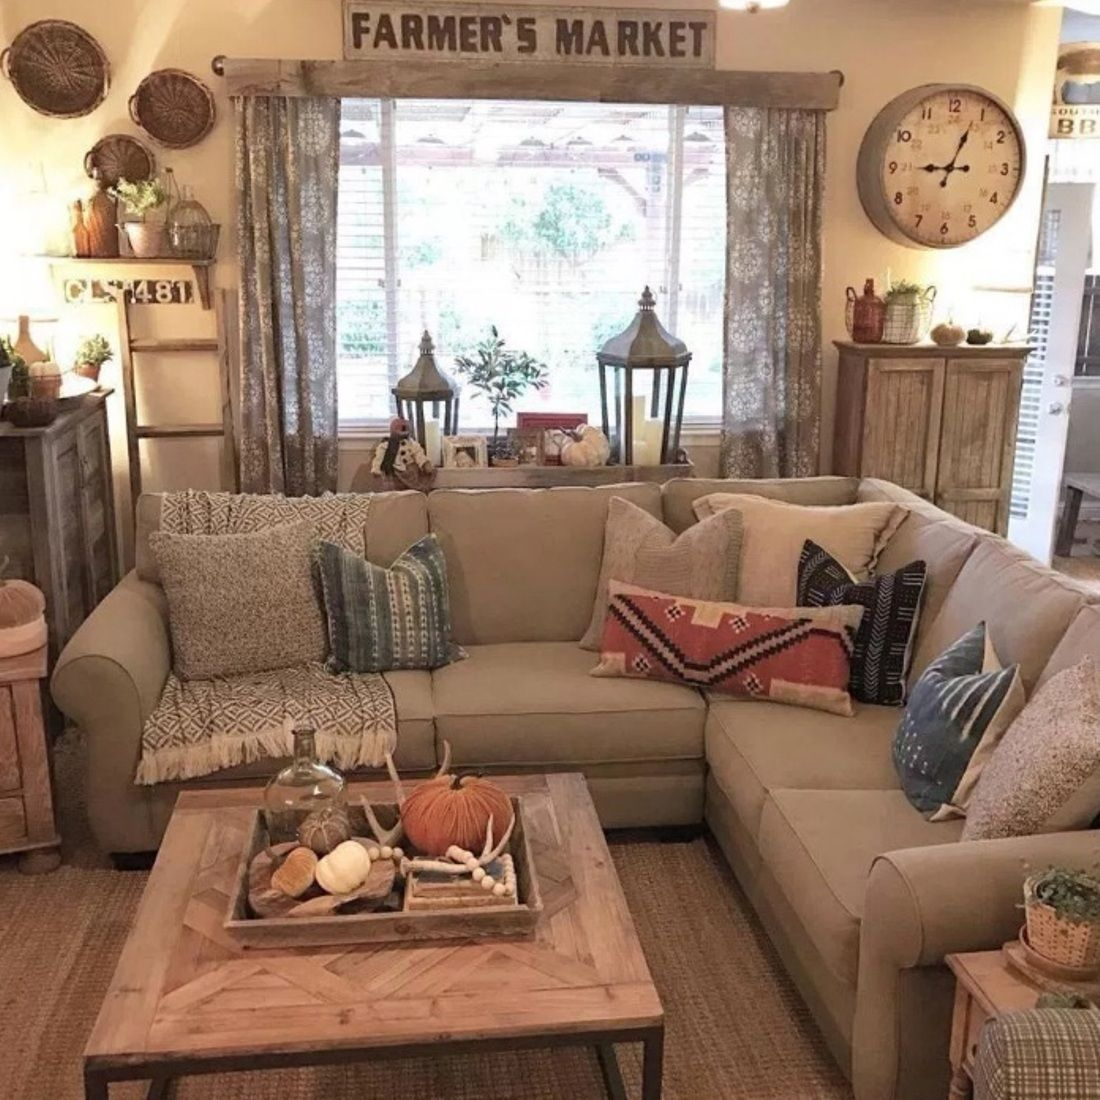 4 Simple Rustic Farmhouse Living Room Decor Ideas My Home D